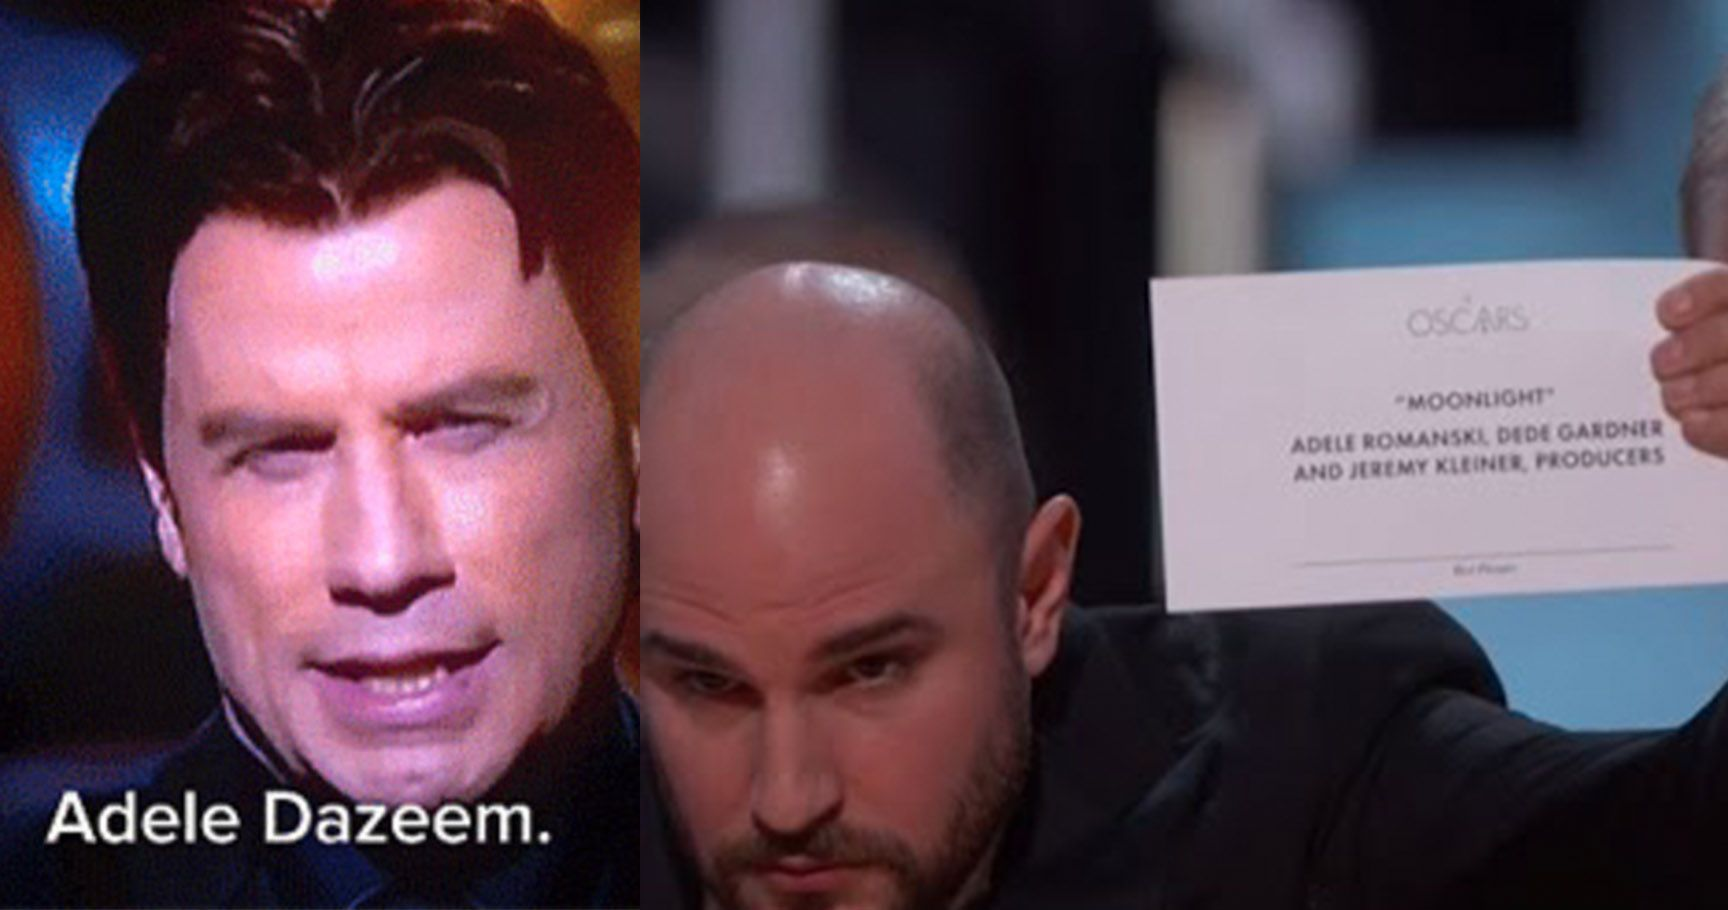 15 Of The Biggest Oscar Fails That Will Make Anyone Cringe And Cry